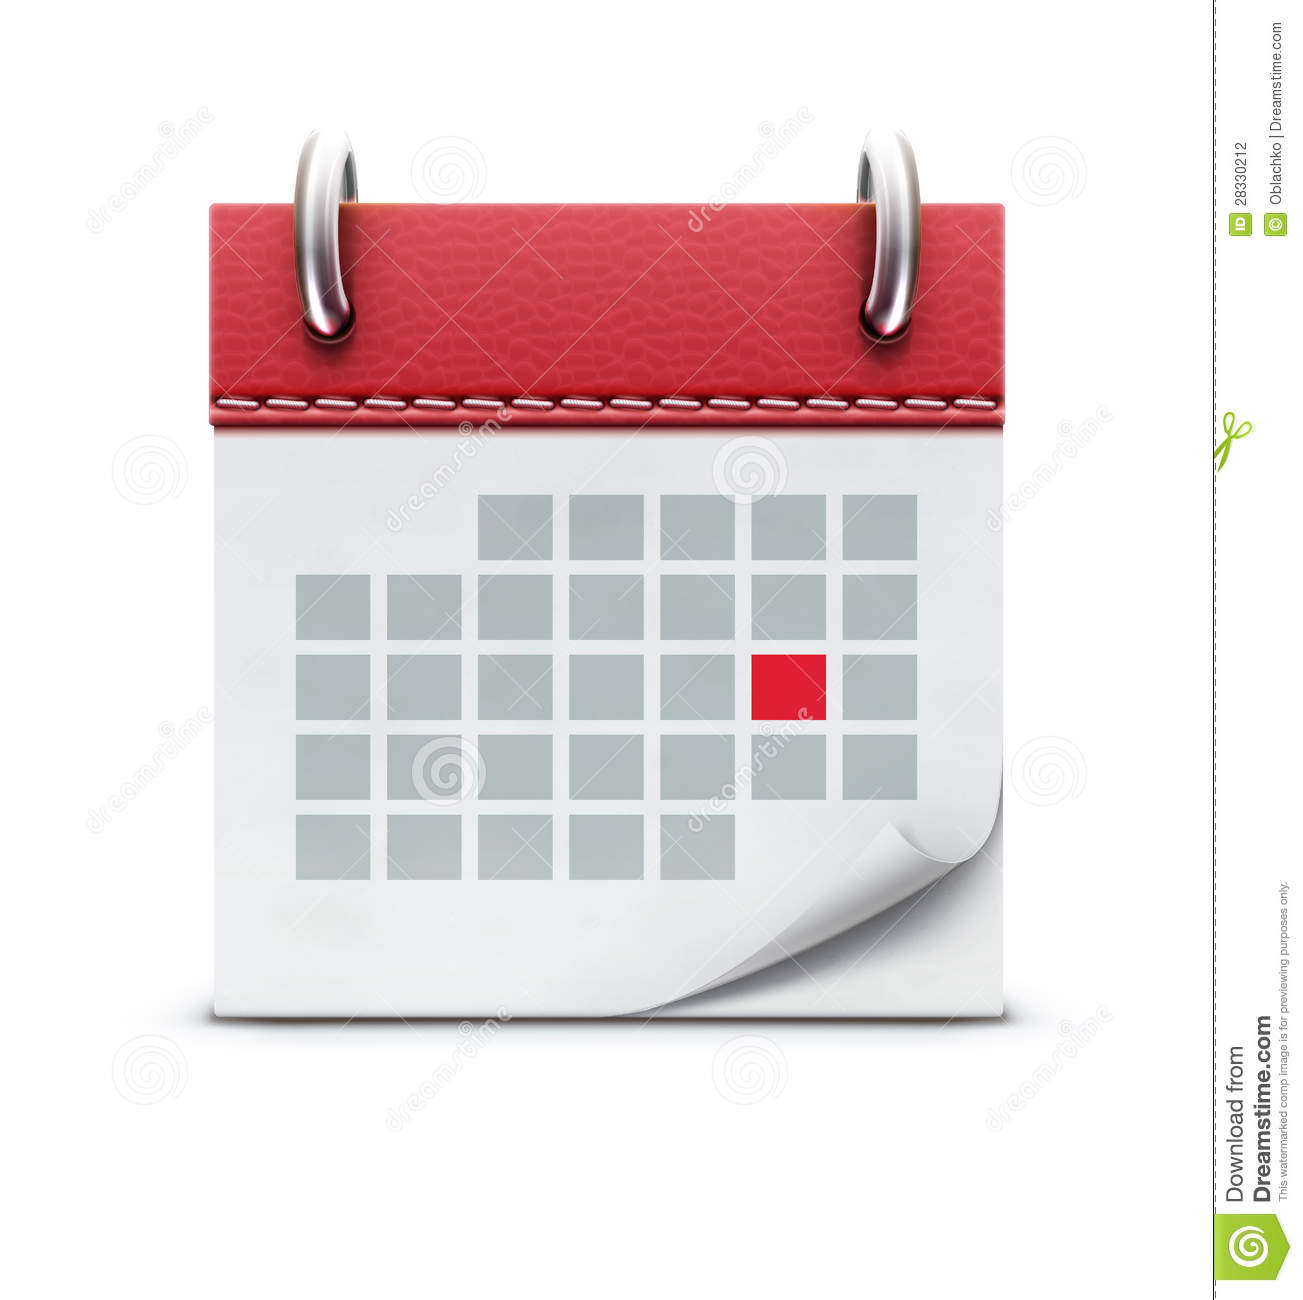 Calendar Illustration Vector : Calendar icon stock vector illustration of element